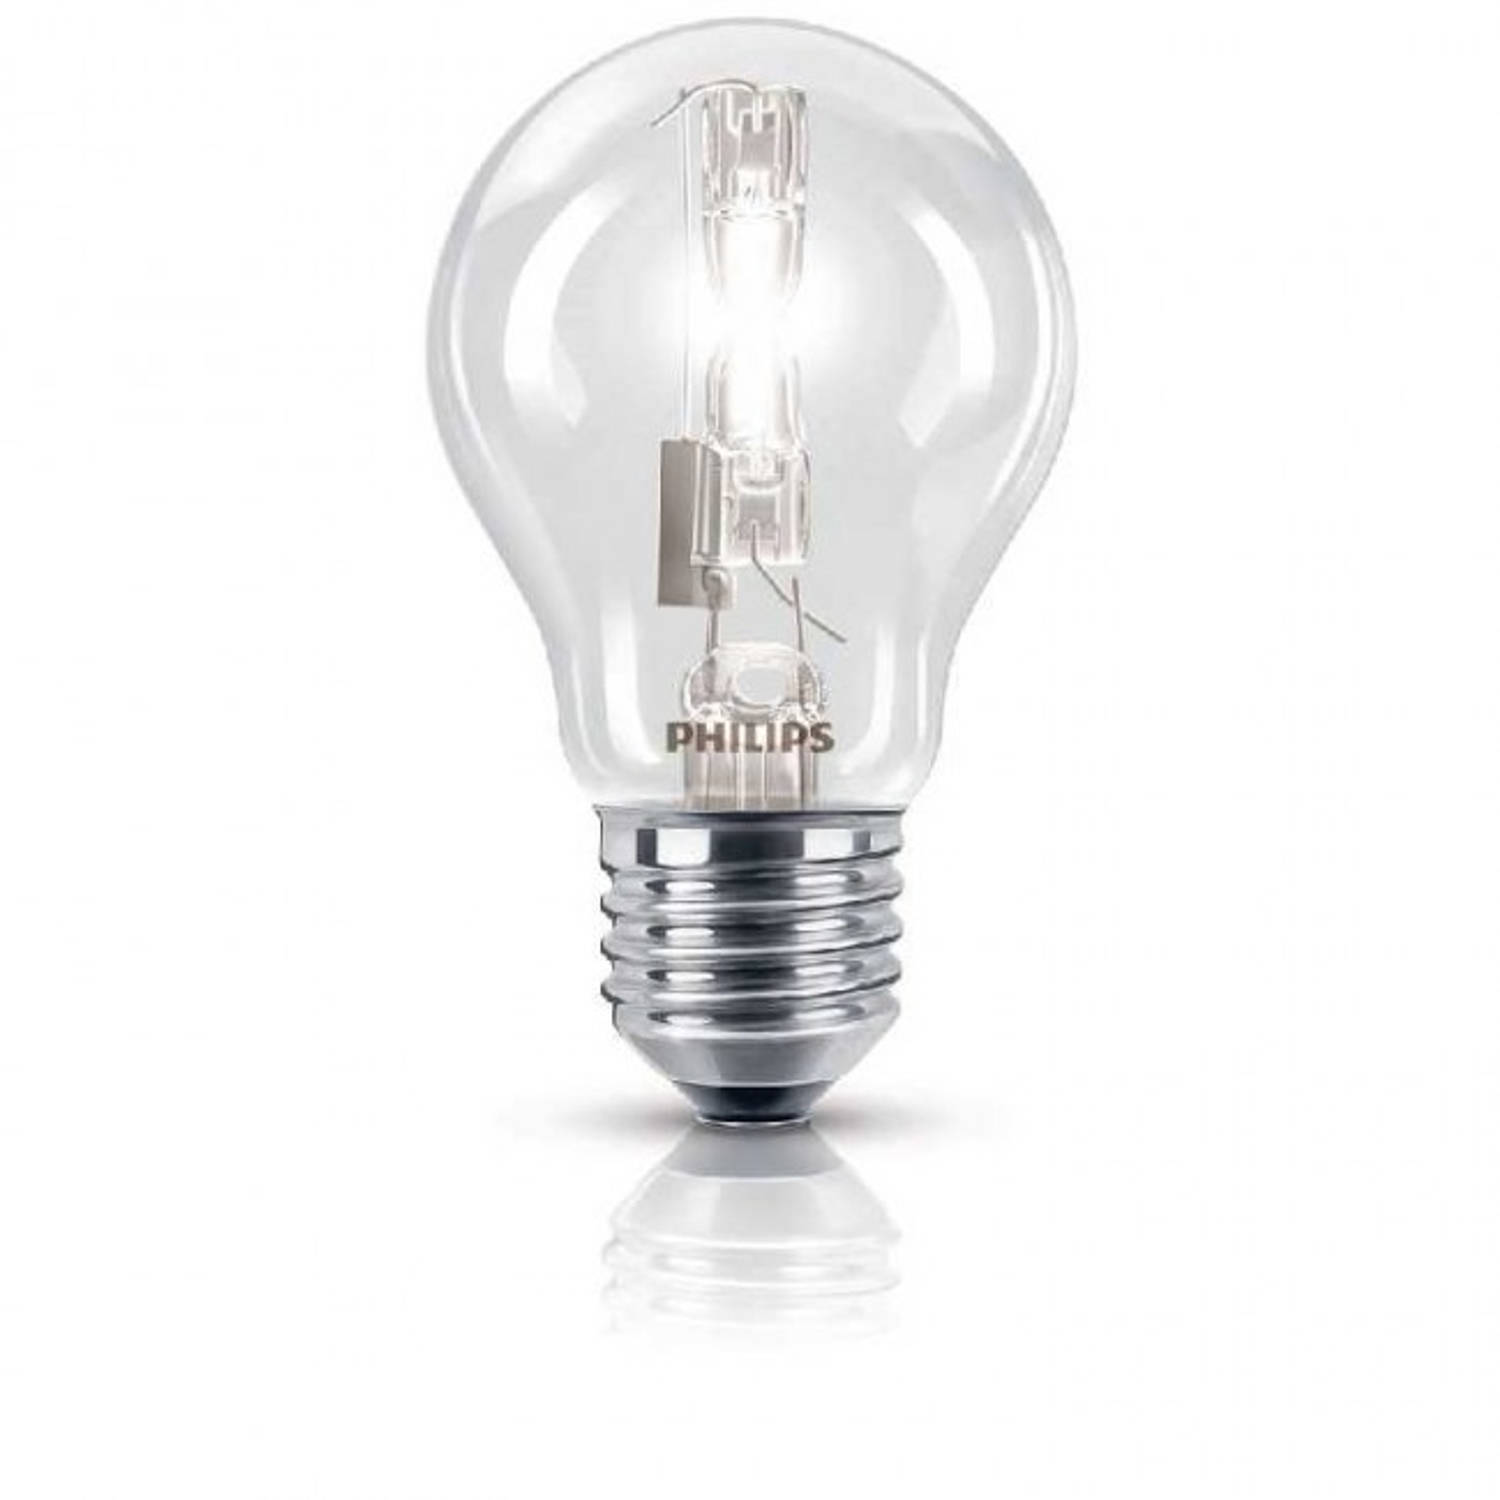 Philips EcoClassic halogeenlamp A55 70W E27 warm wit